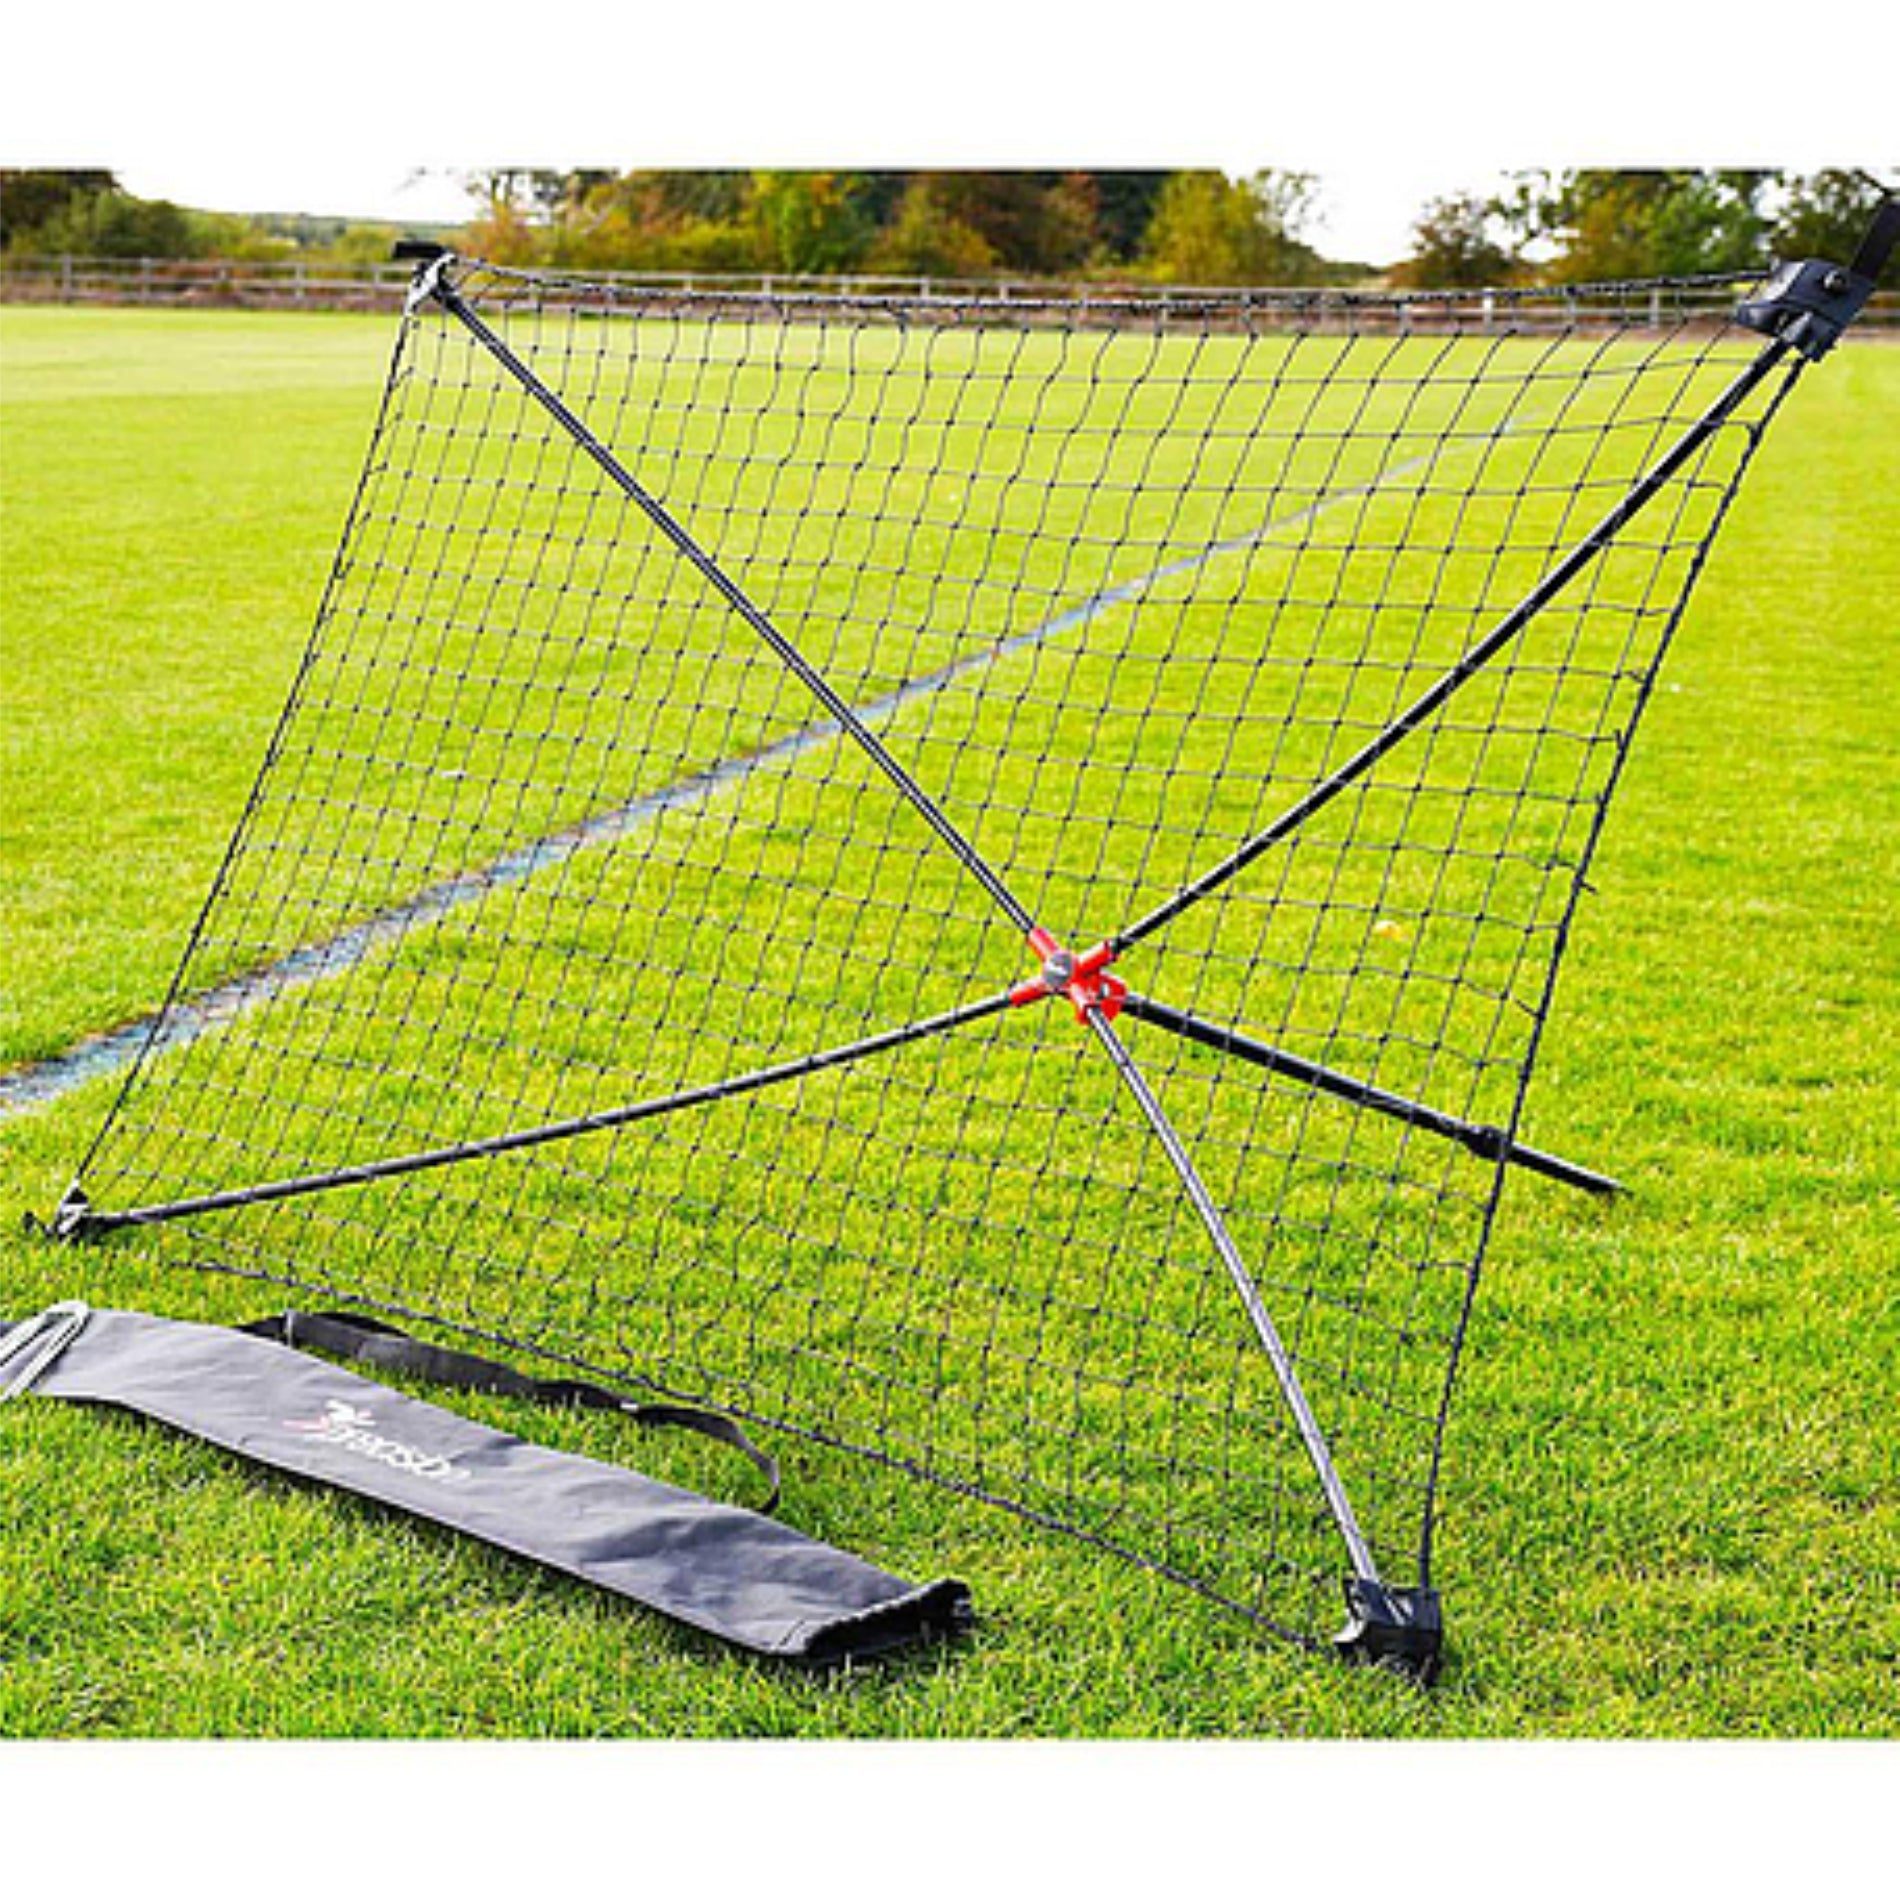 Precision Portable Rebounder & bag